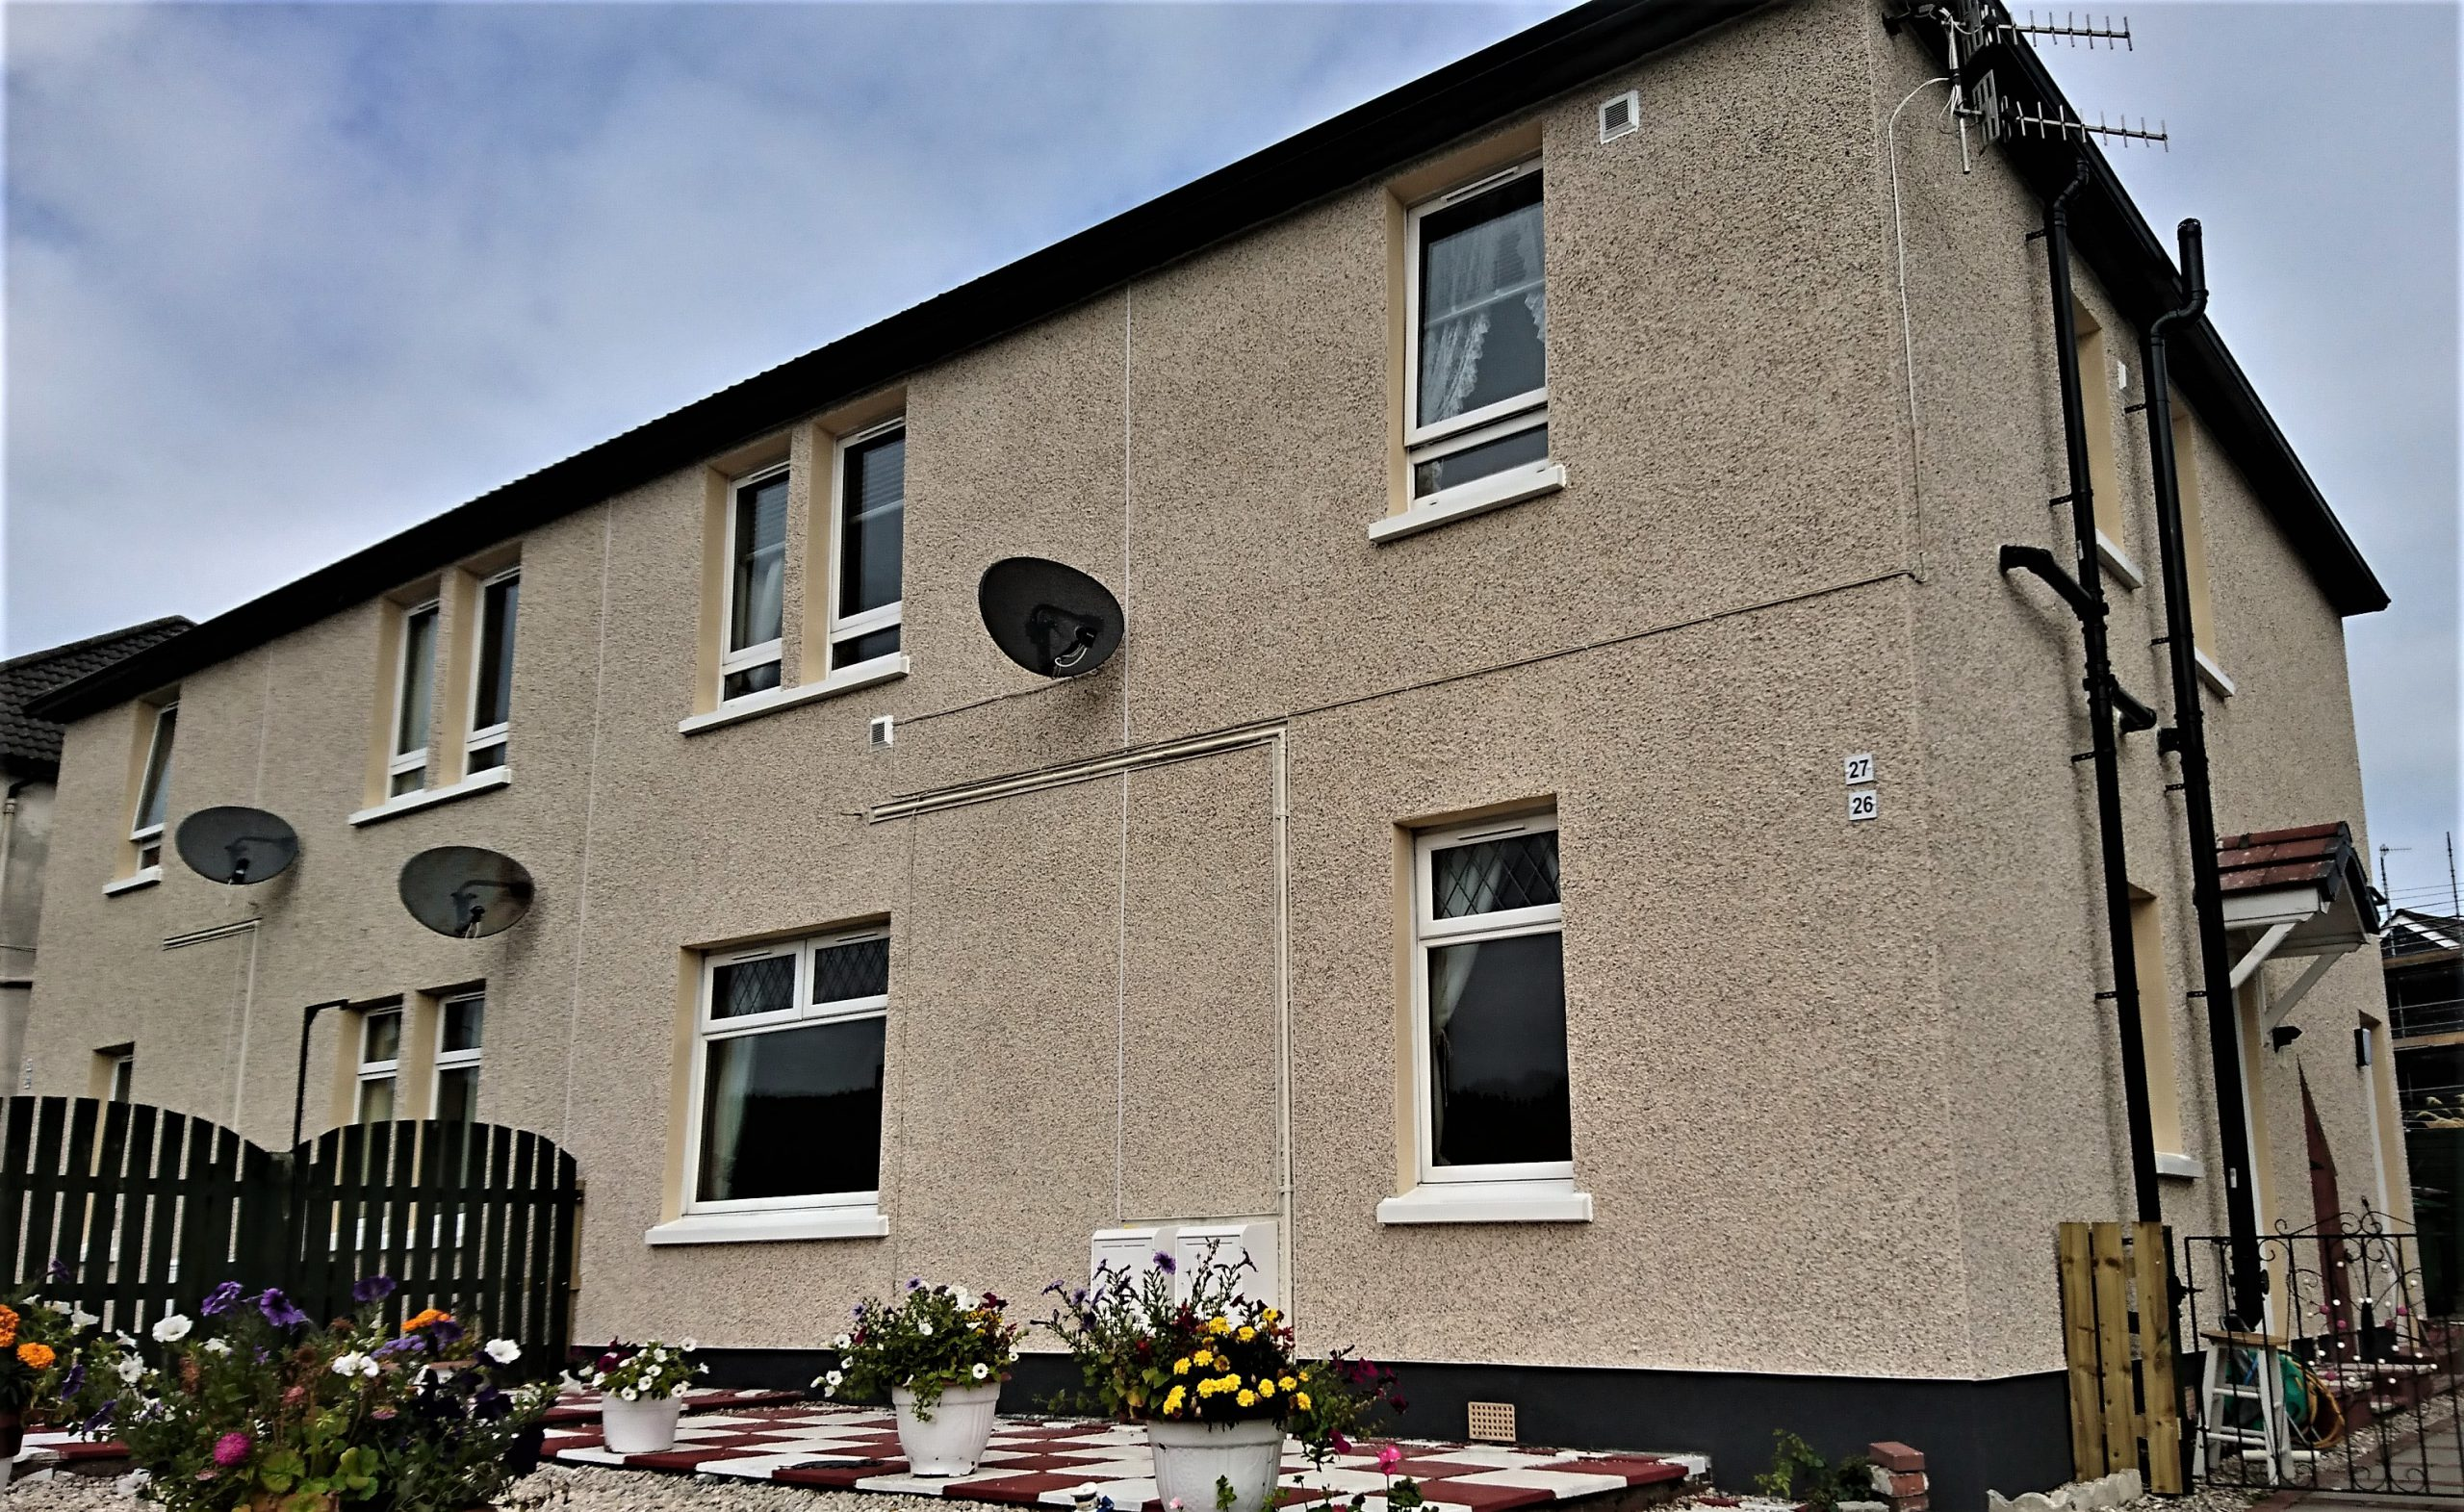 dry-dash-render-Edinburgh-roughcast-repair-Edinburgh